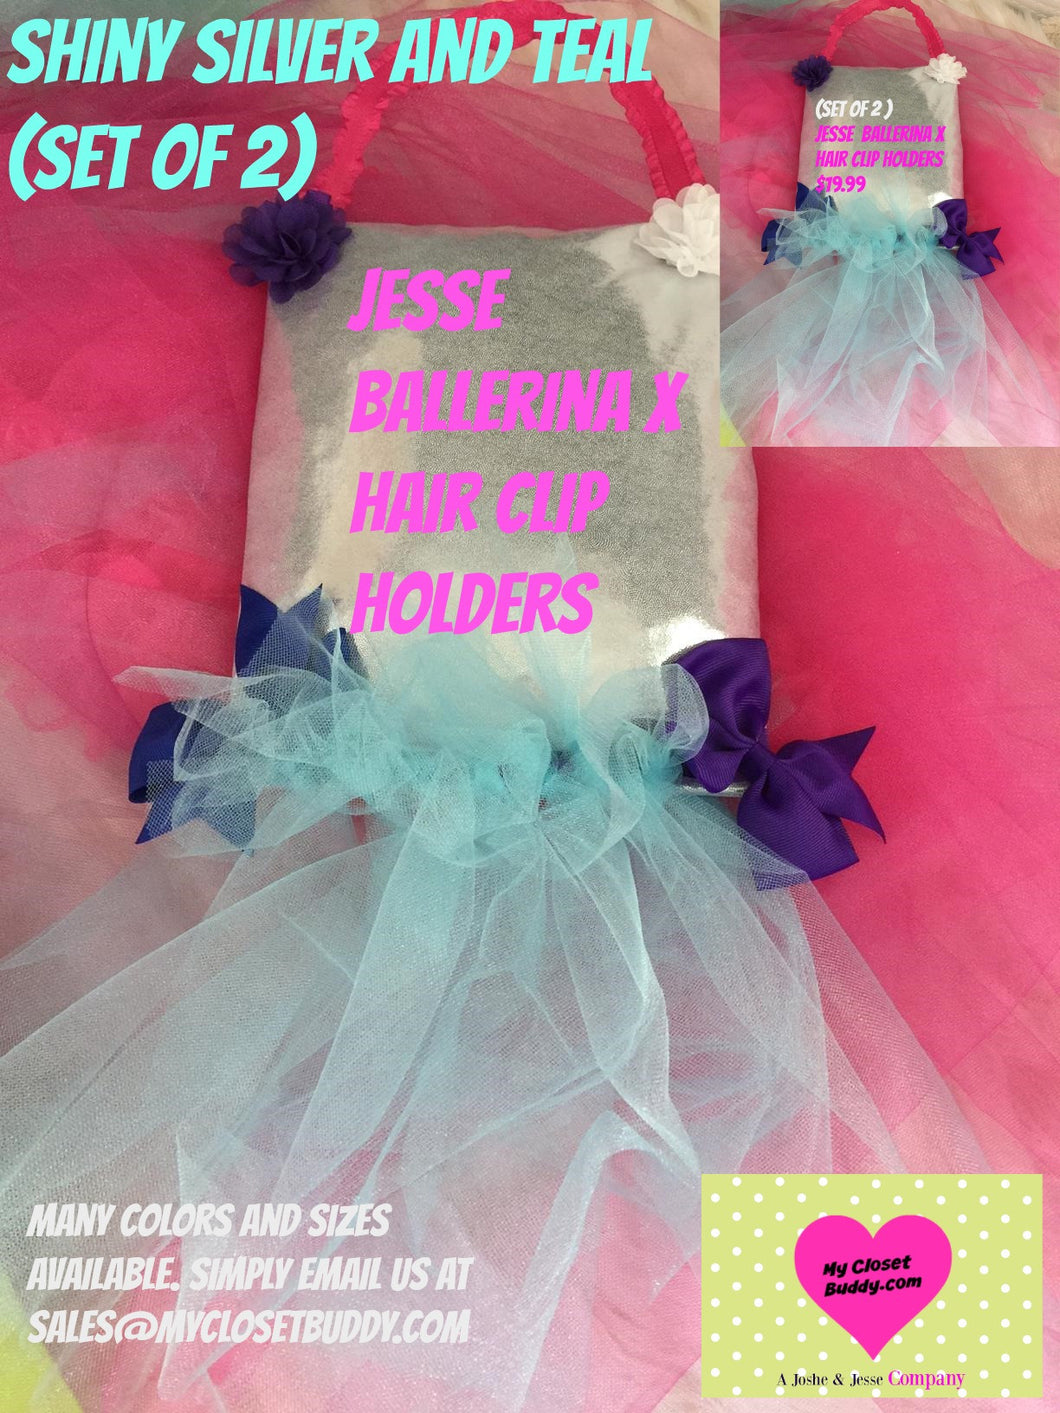 Set of 2 Silver and Teal Ballerina X Tutu Hair Clip Holders